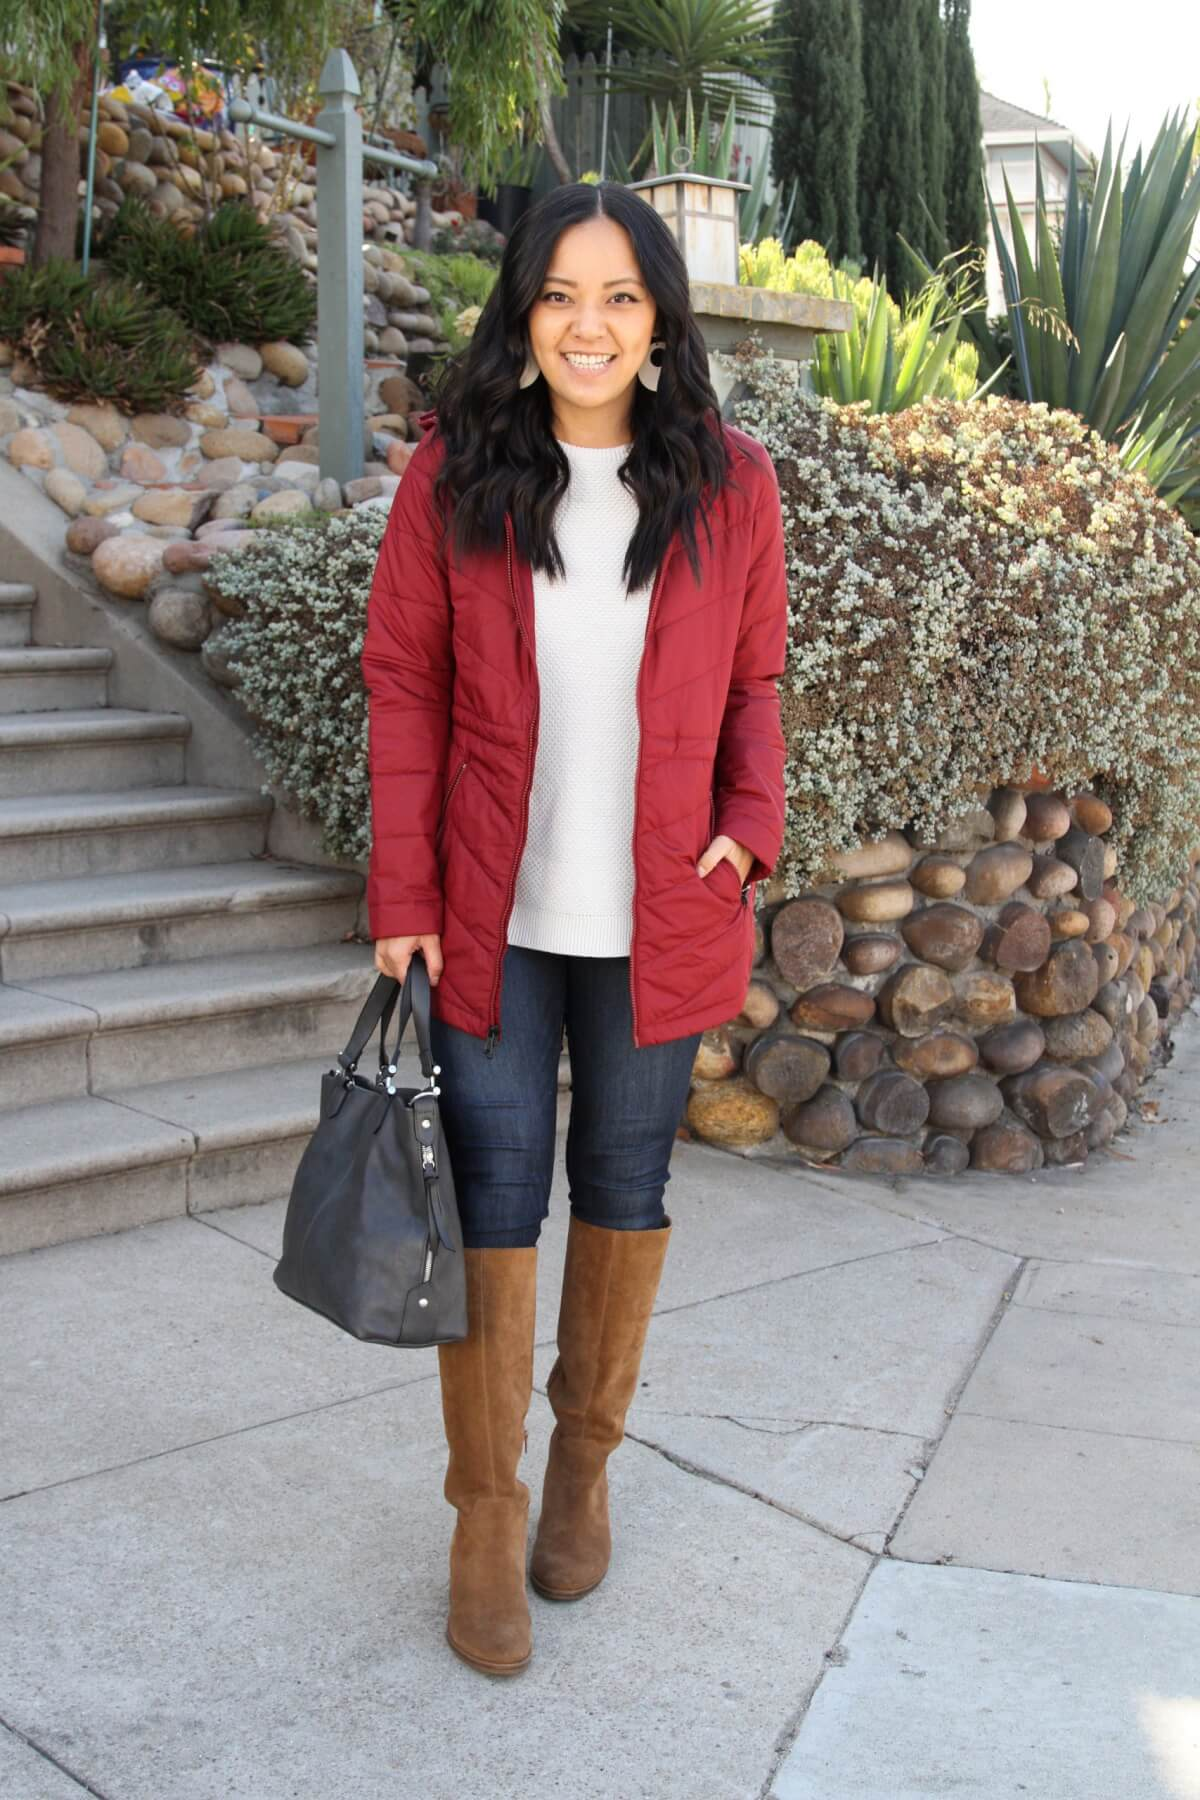 Casual Winter Outfit: white sweater + red puffer jacket + skinny jeans + tan suede boots + dark grey bag + cream leather earrings